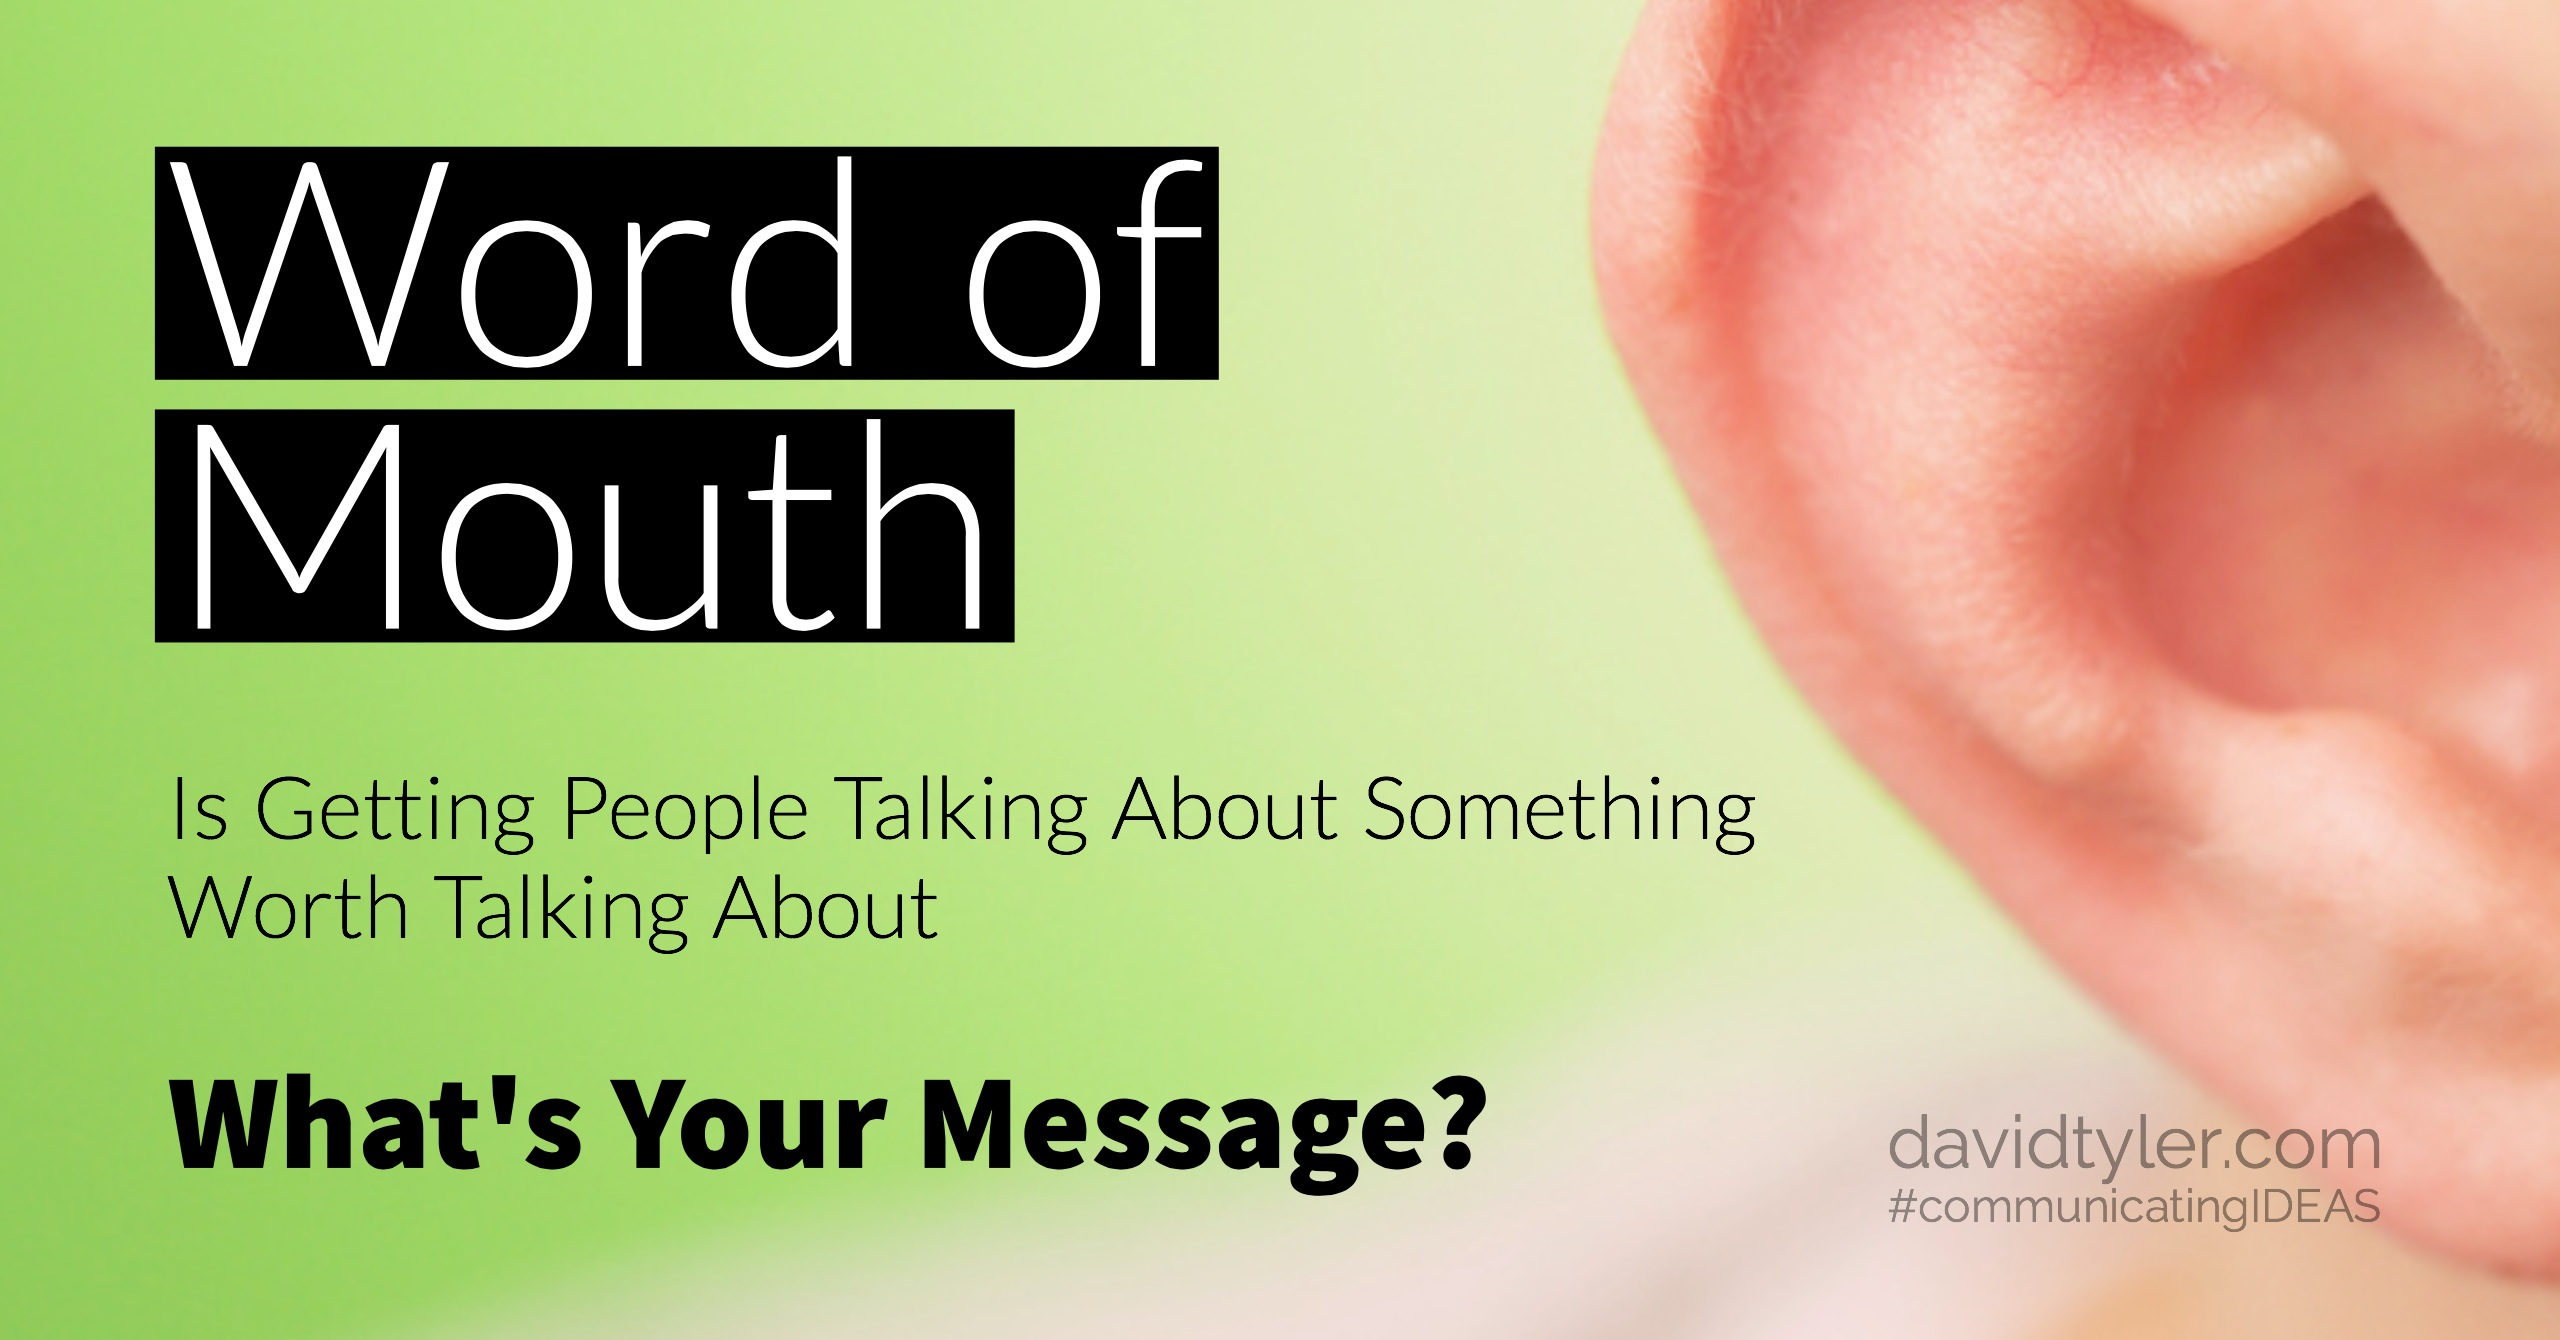 Word of Mouth is Getting People Talking about Something Worth Talking About